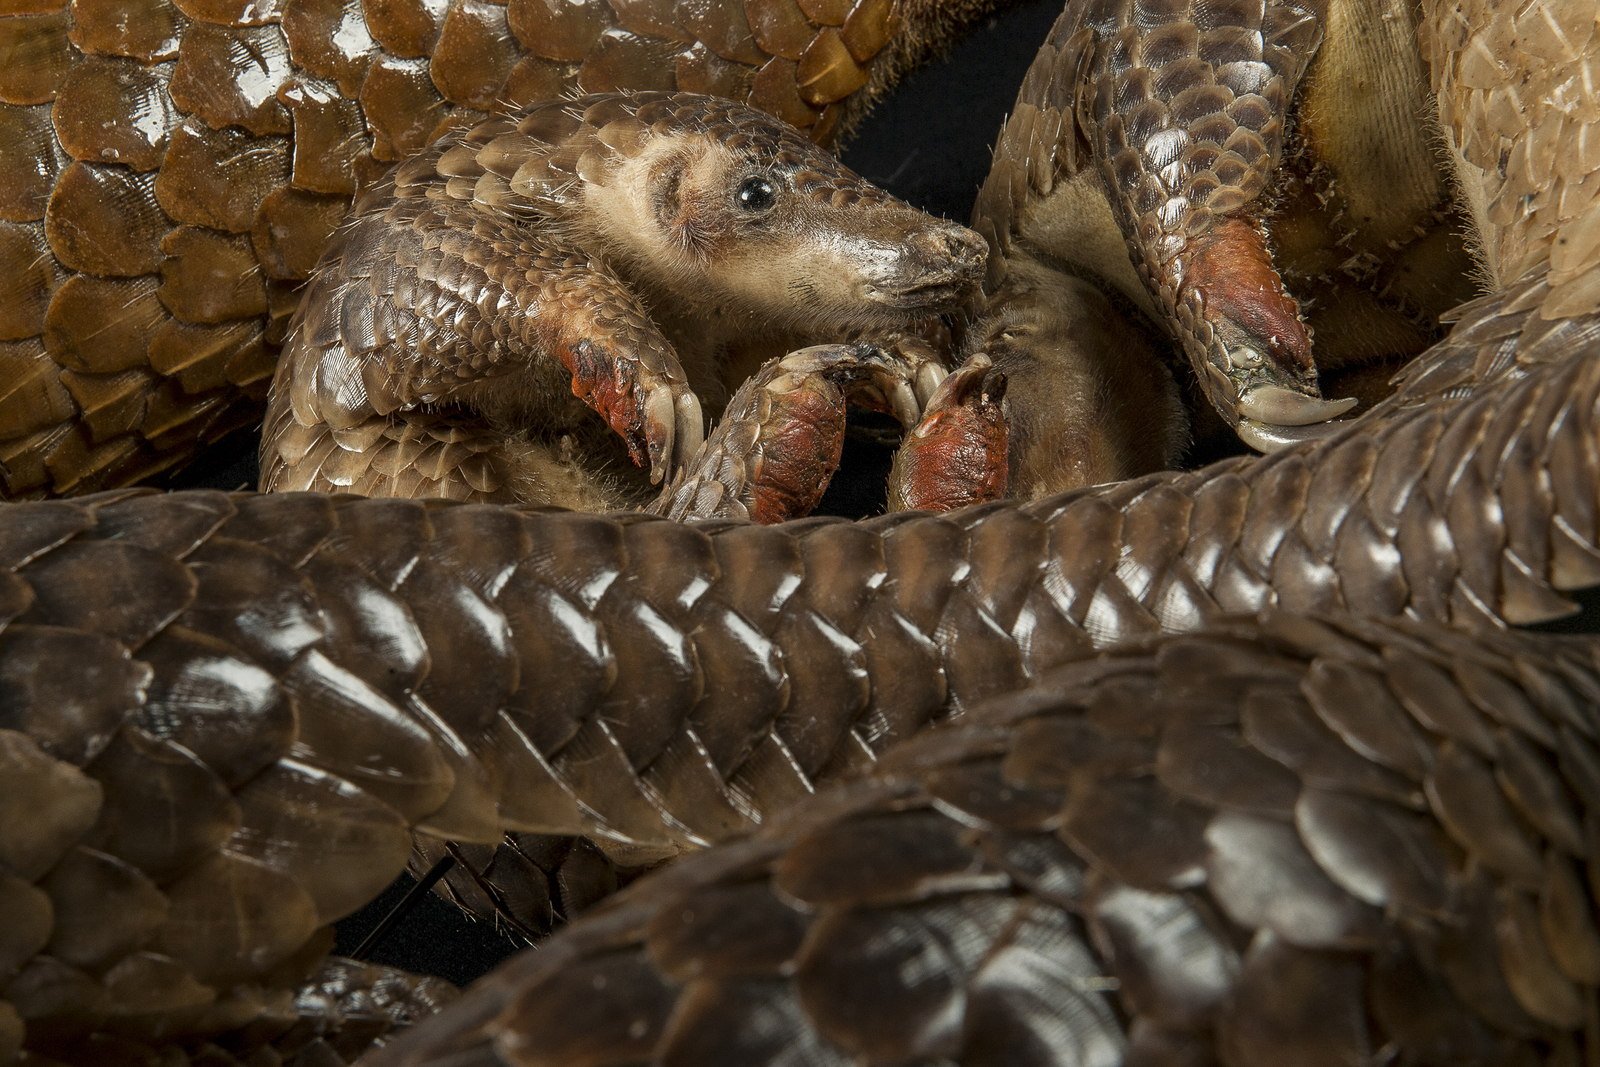 The pangolin is the world's most trafficked animal, and most are not lucky enough to be saved from poachers and hunters. Photo credit: © Xiao Shibai/Wild Wonders China